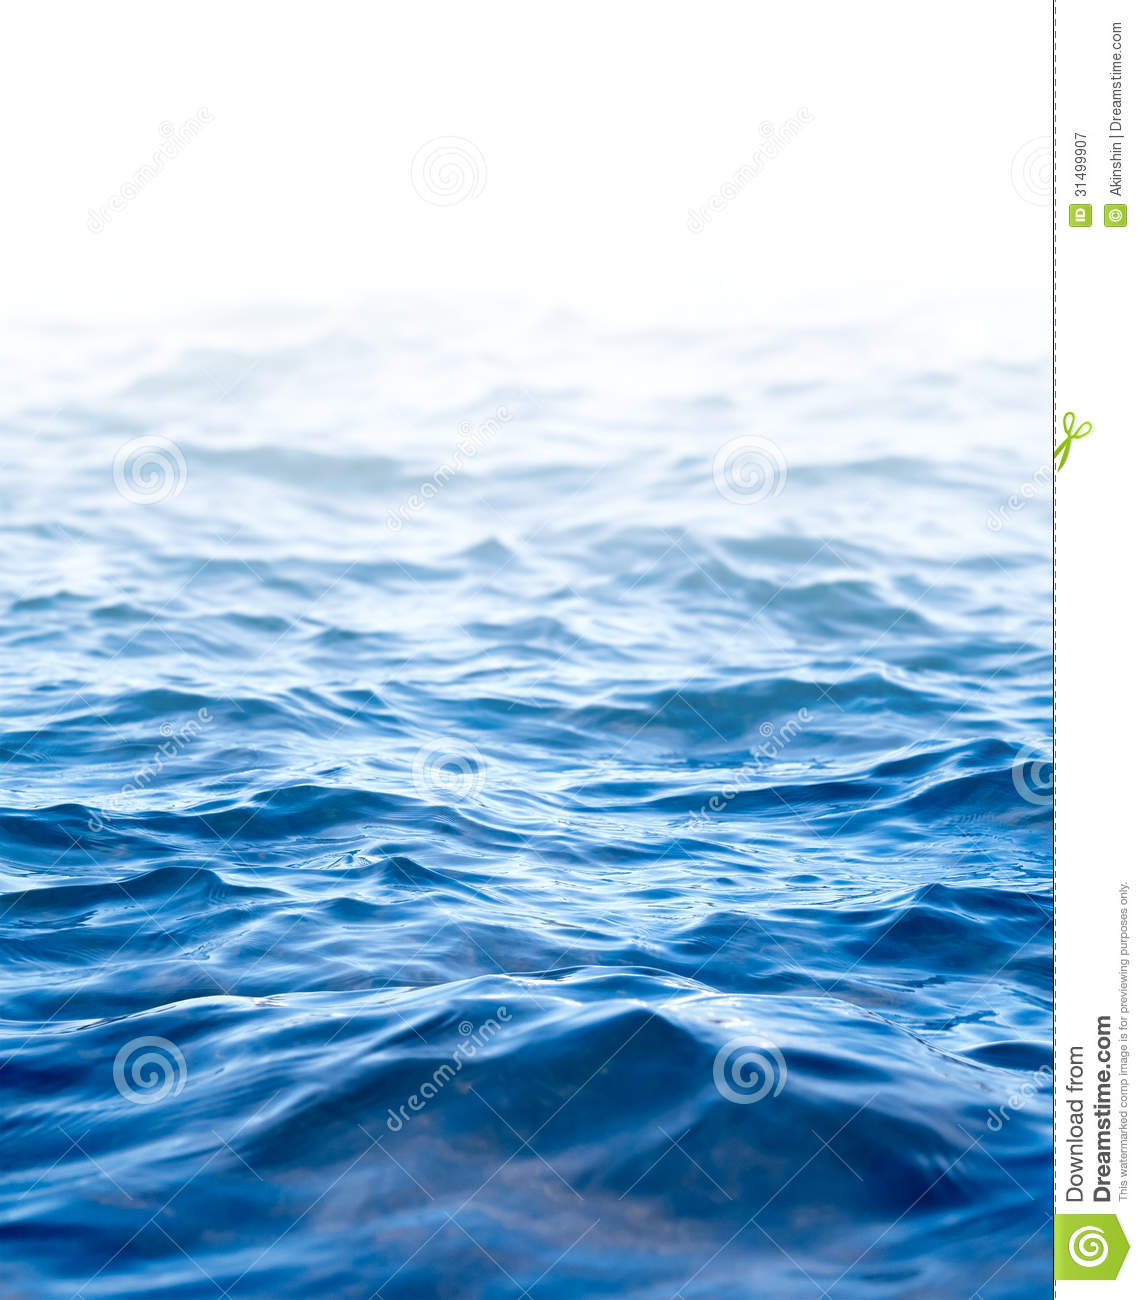 water surface wallpaper - photo #34